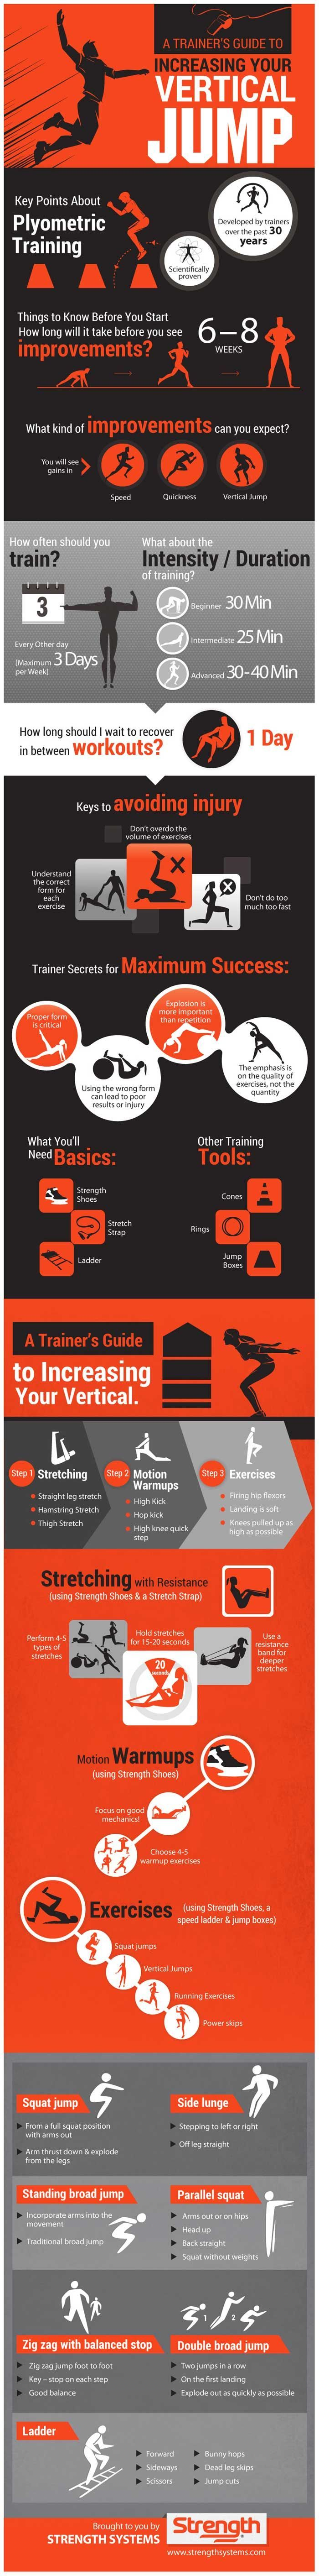 #Infographic: A Trainer's Guide to Increasing Your Vertical Jump